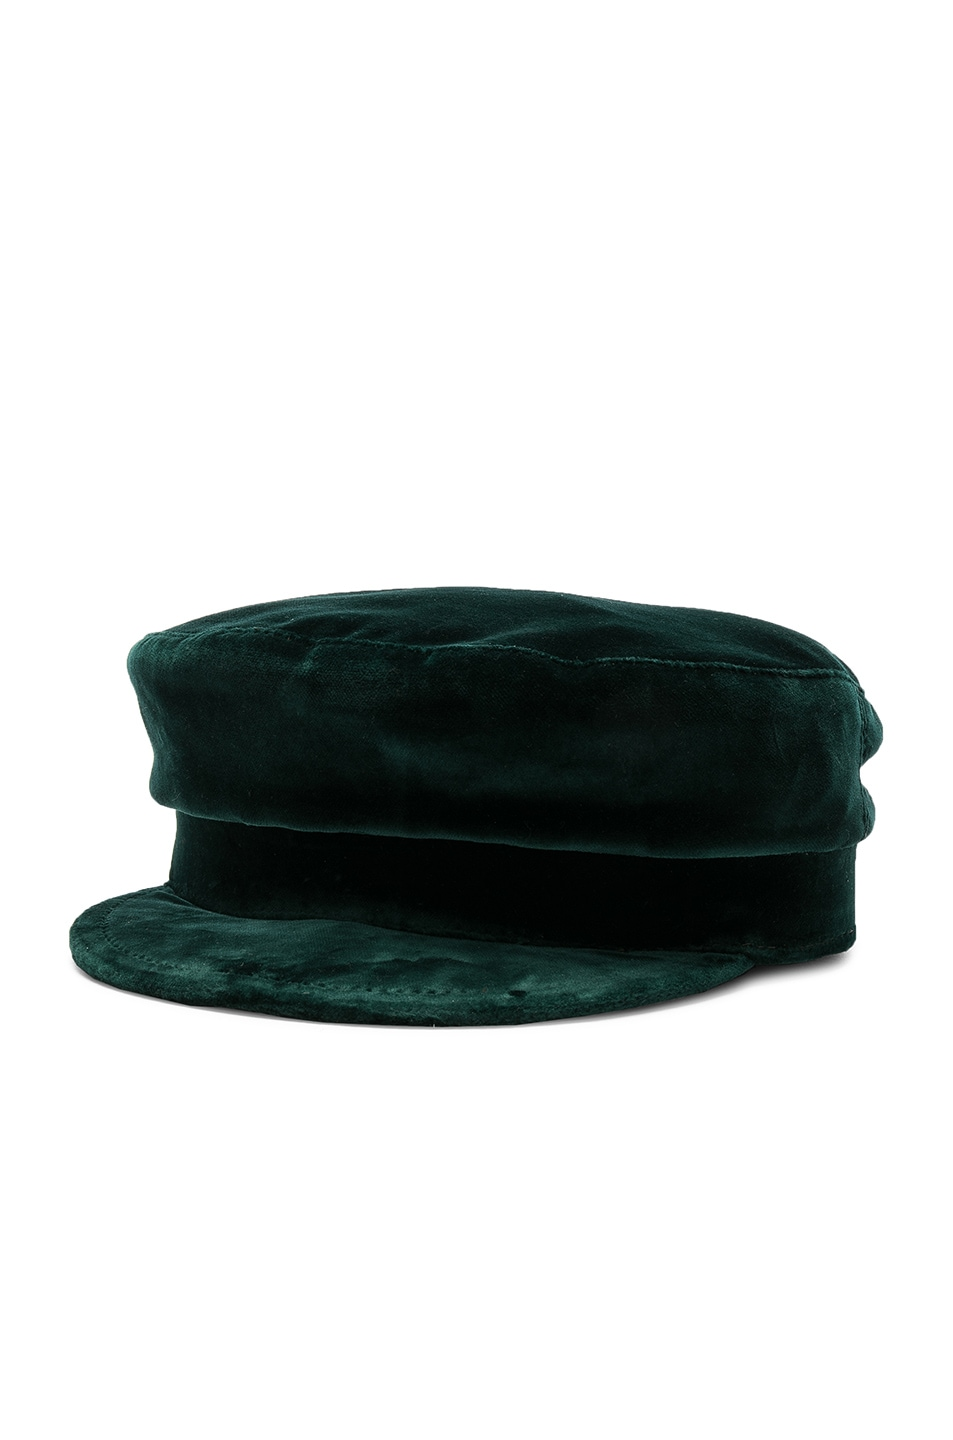 Image 2 of Janessa Leone Mattie Fisherman Velvet Cap in Emerald